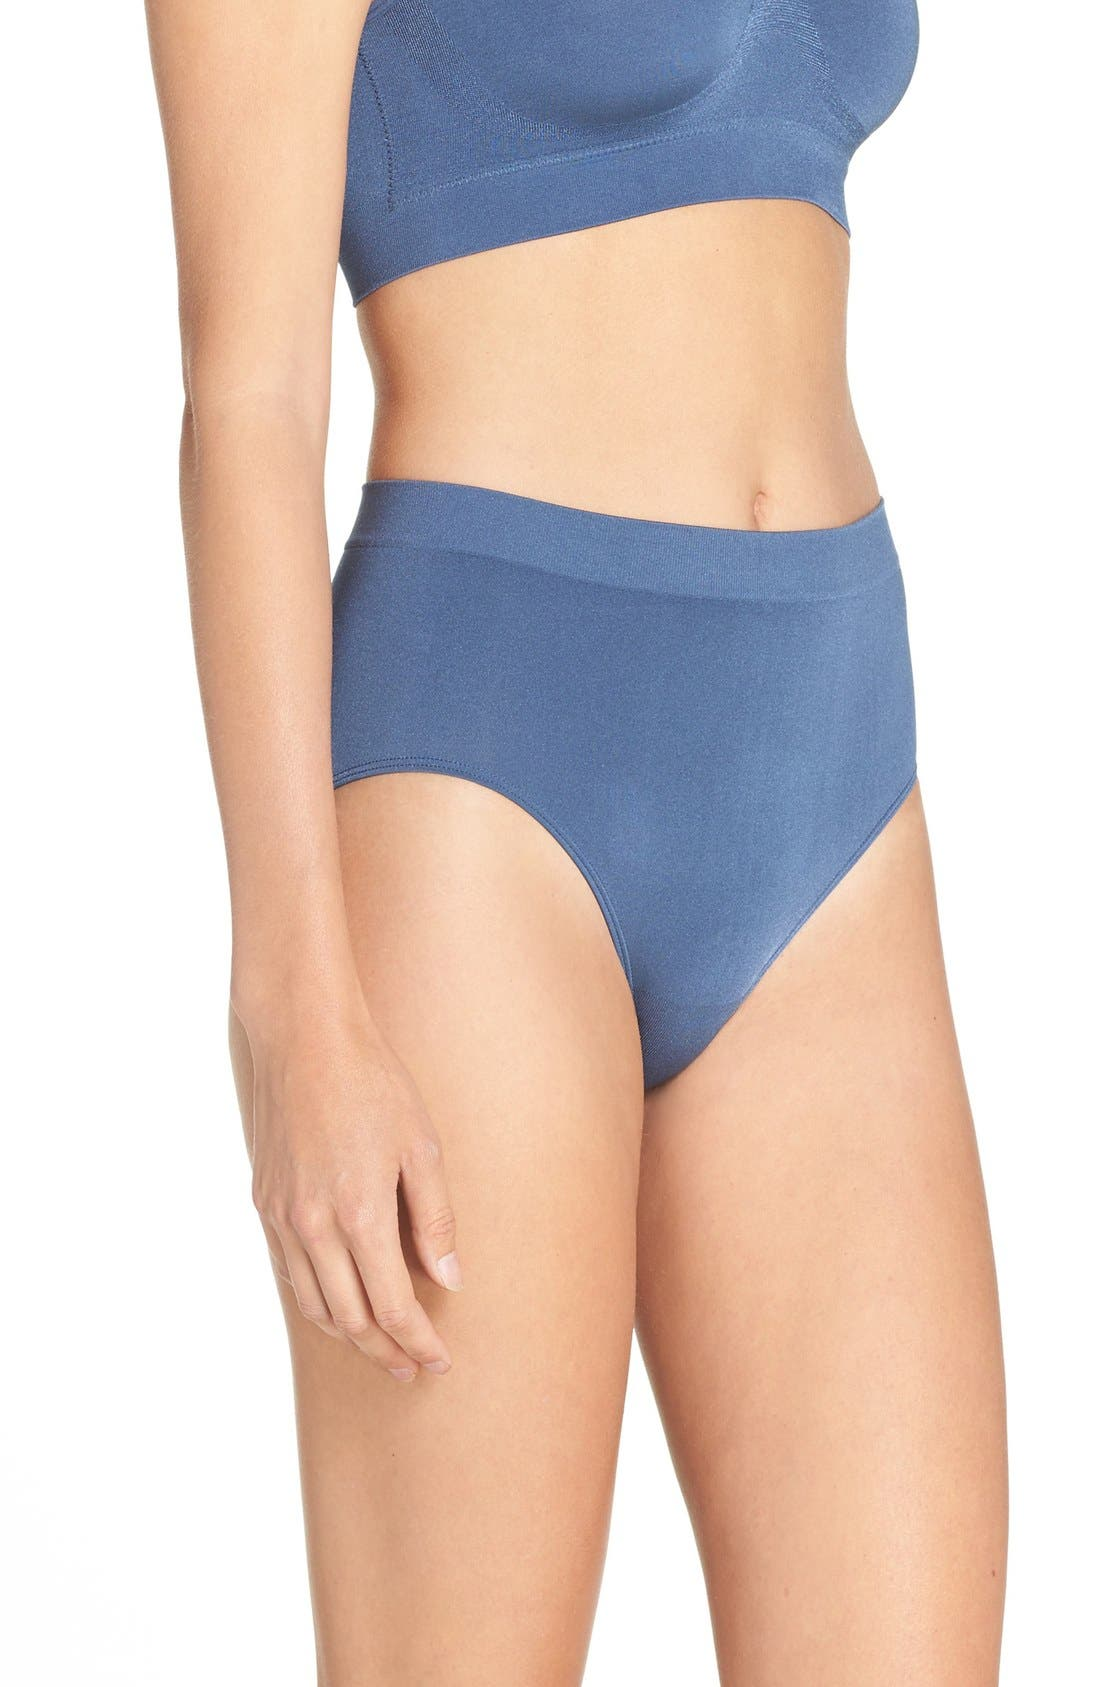 B Smooth Briefs,                             Alternate thumbnail 161, color,